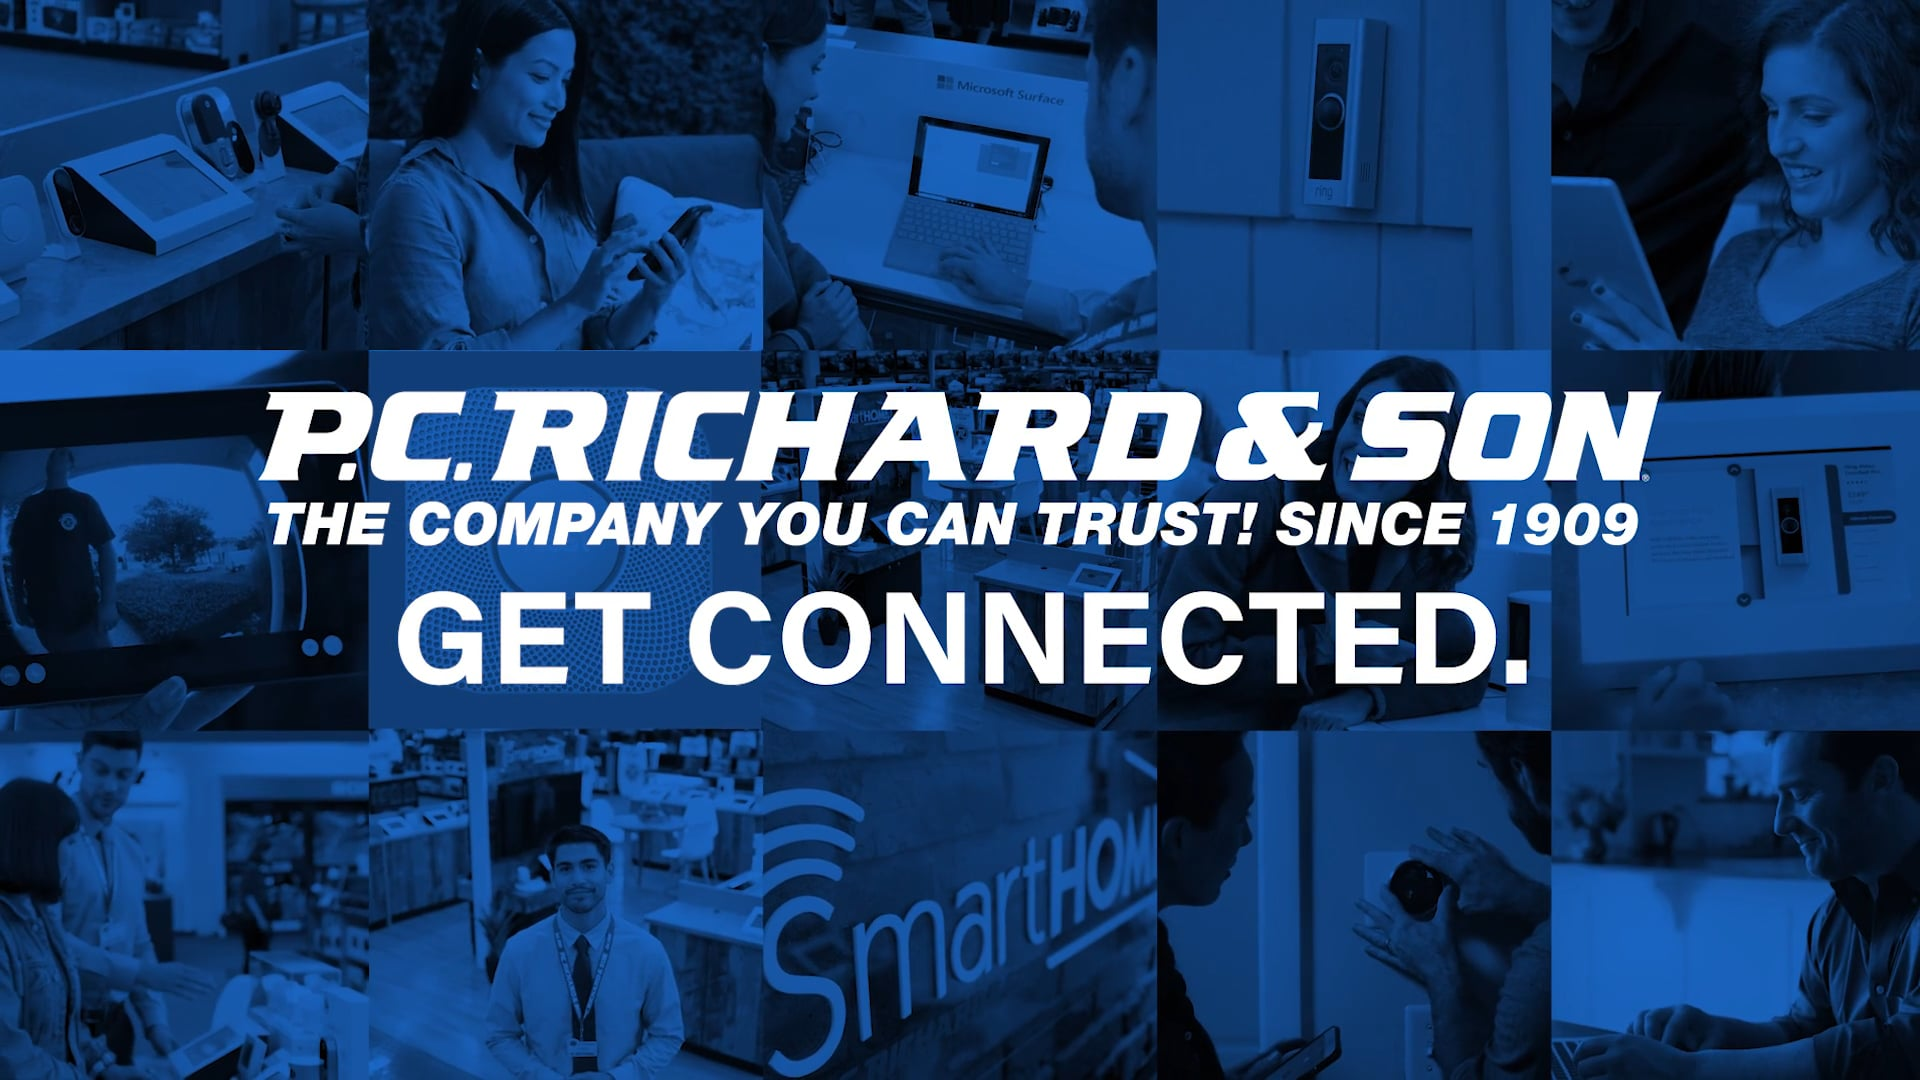 PC Richard & Sons - Get Connected :30